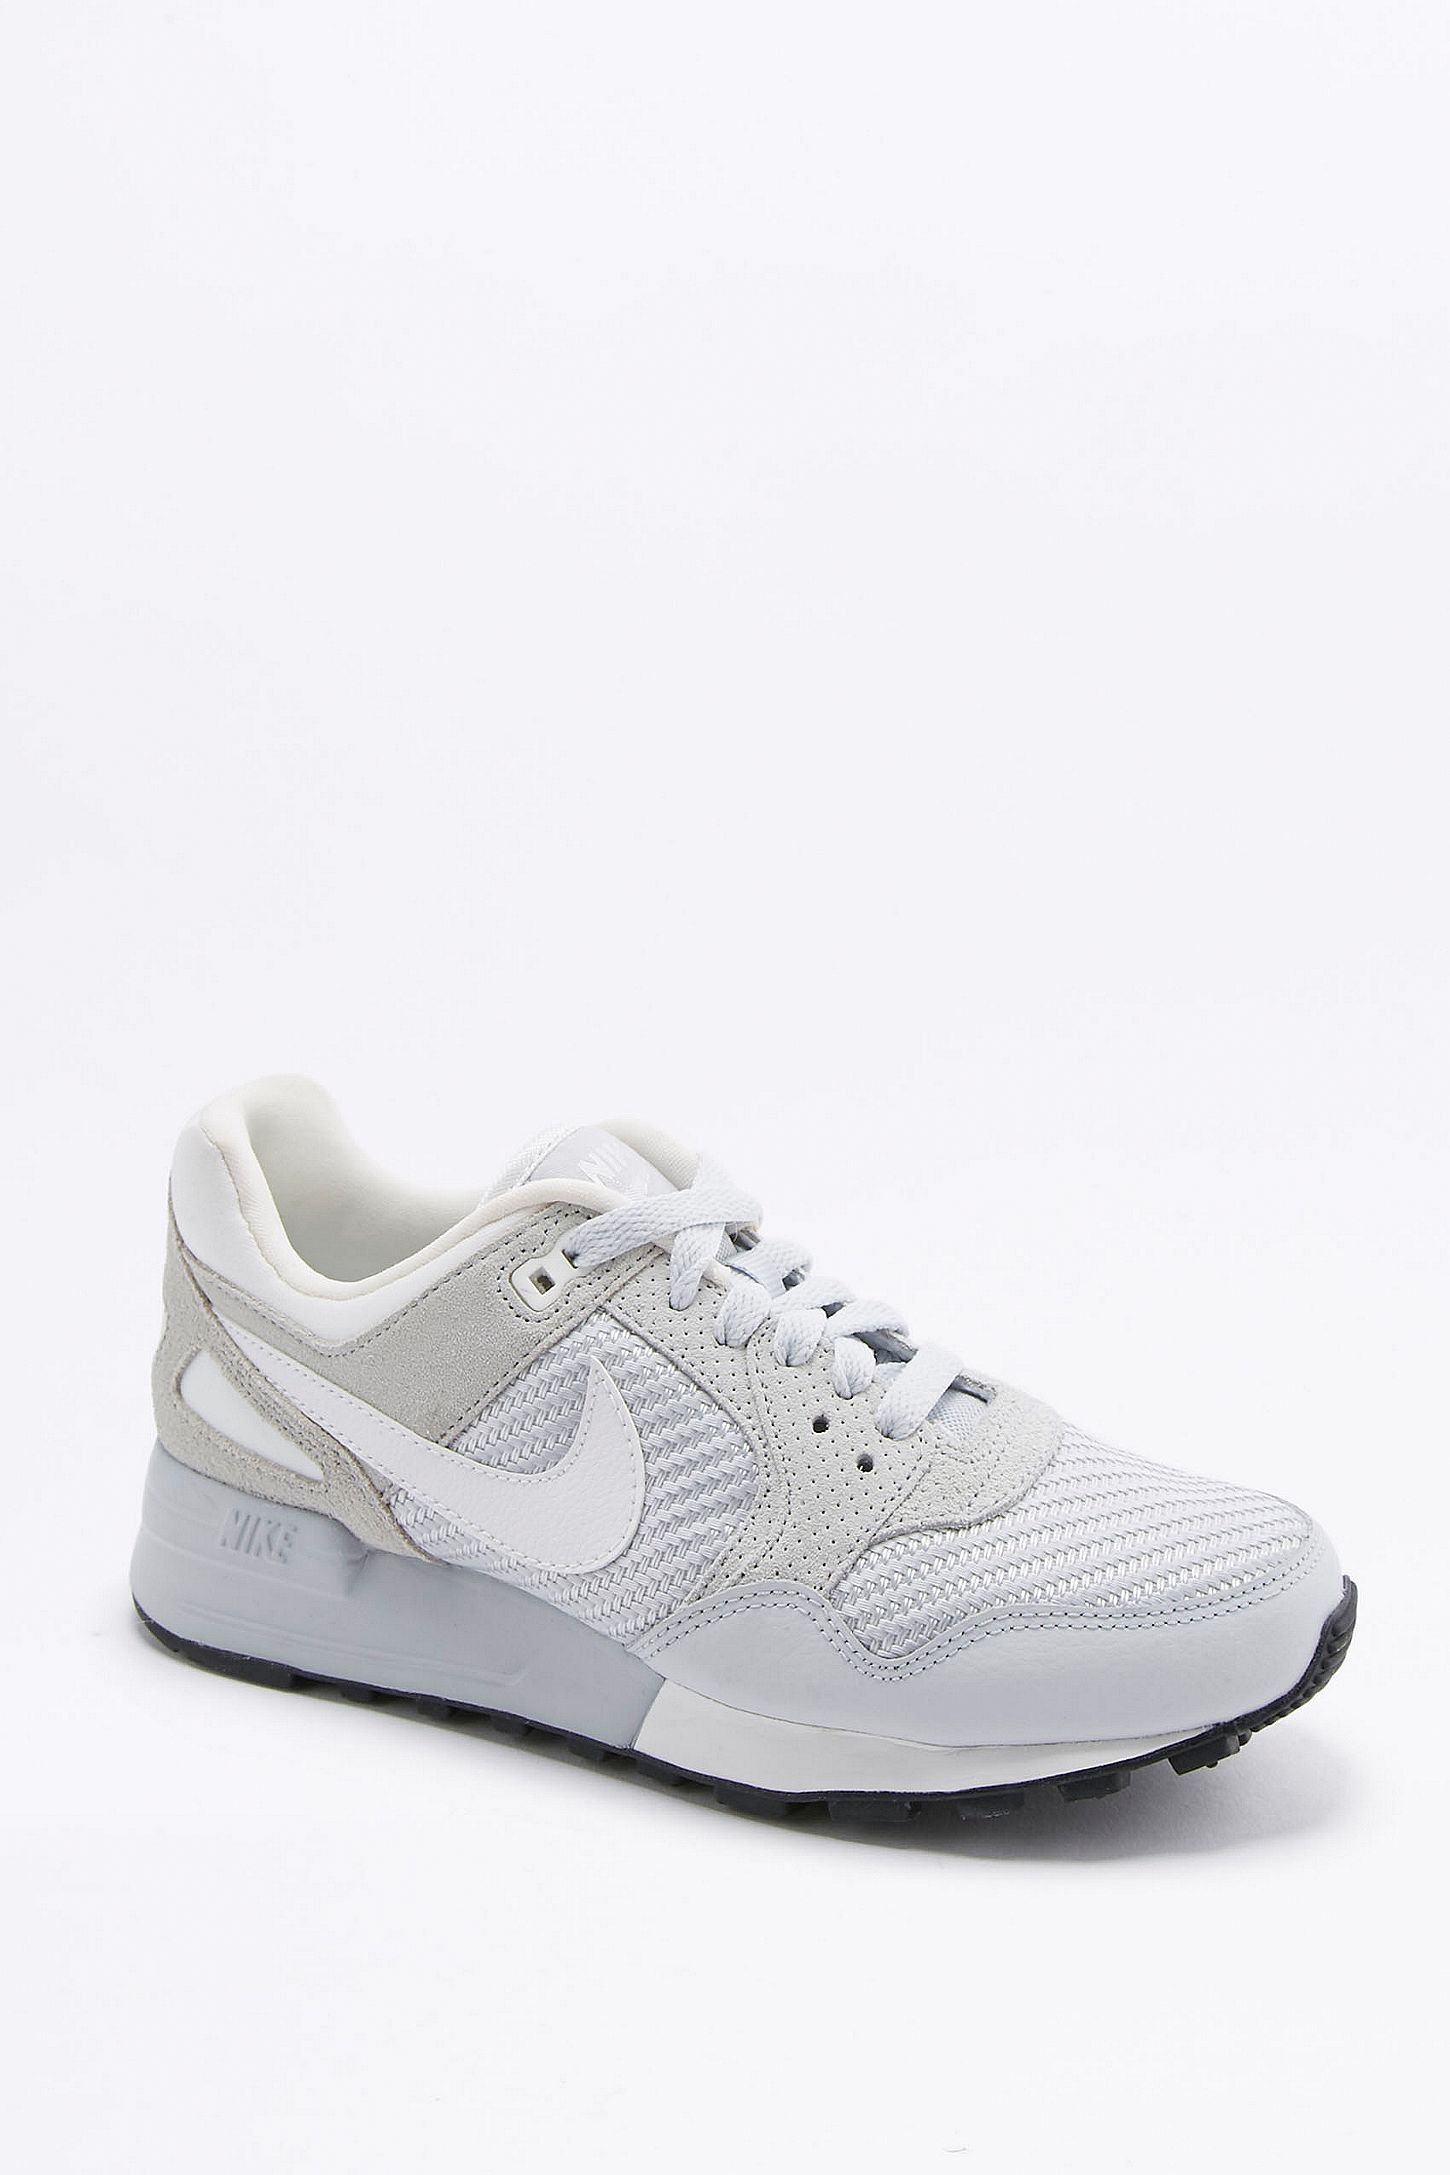 960f501f349c Nike Air Pegasus 89 Grey and White Trainers. Click on image to zoom. Hover  to zoom. Double Tap to Zoom